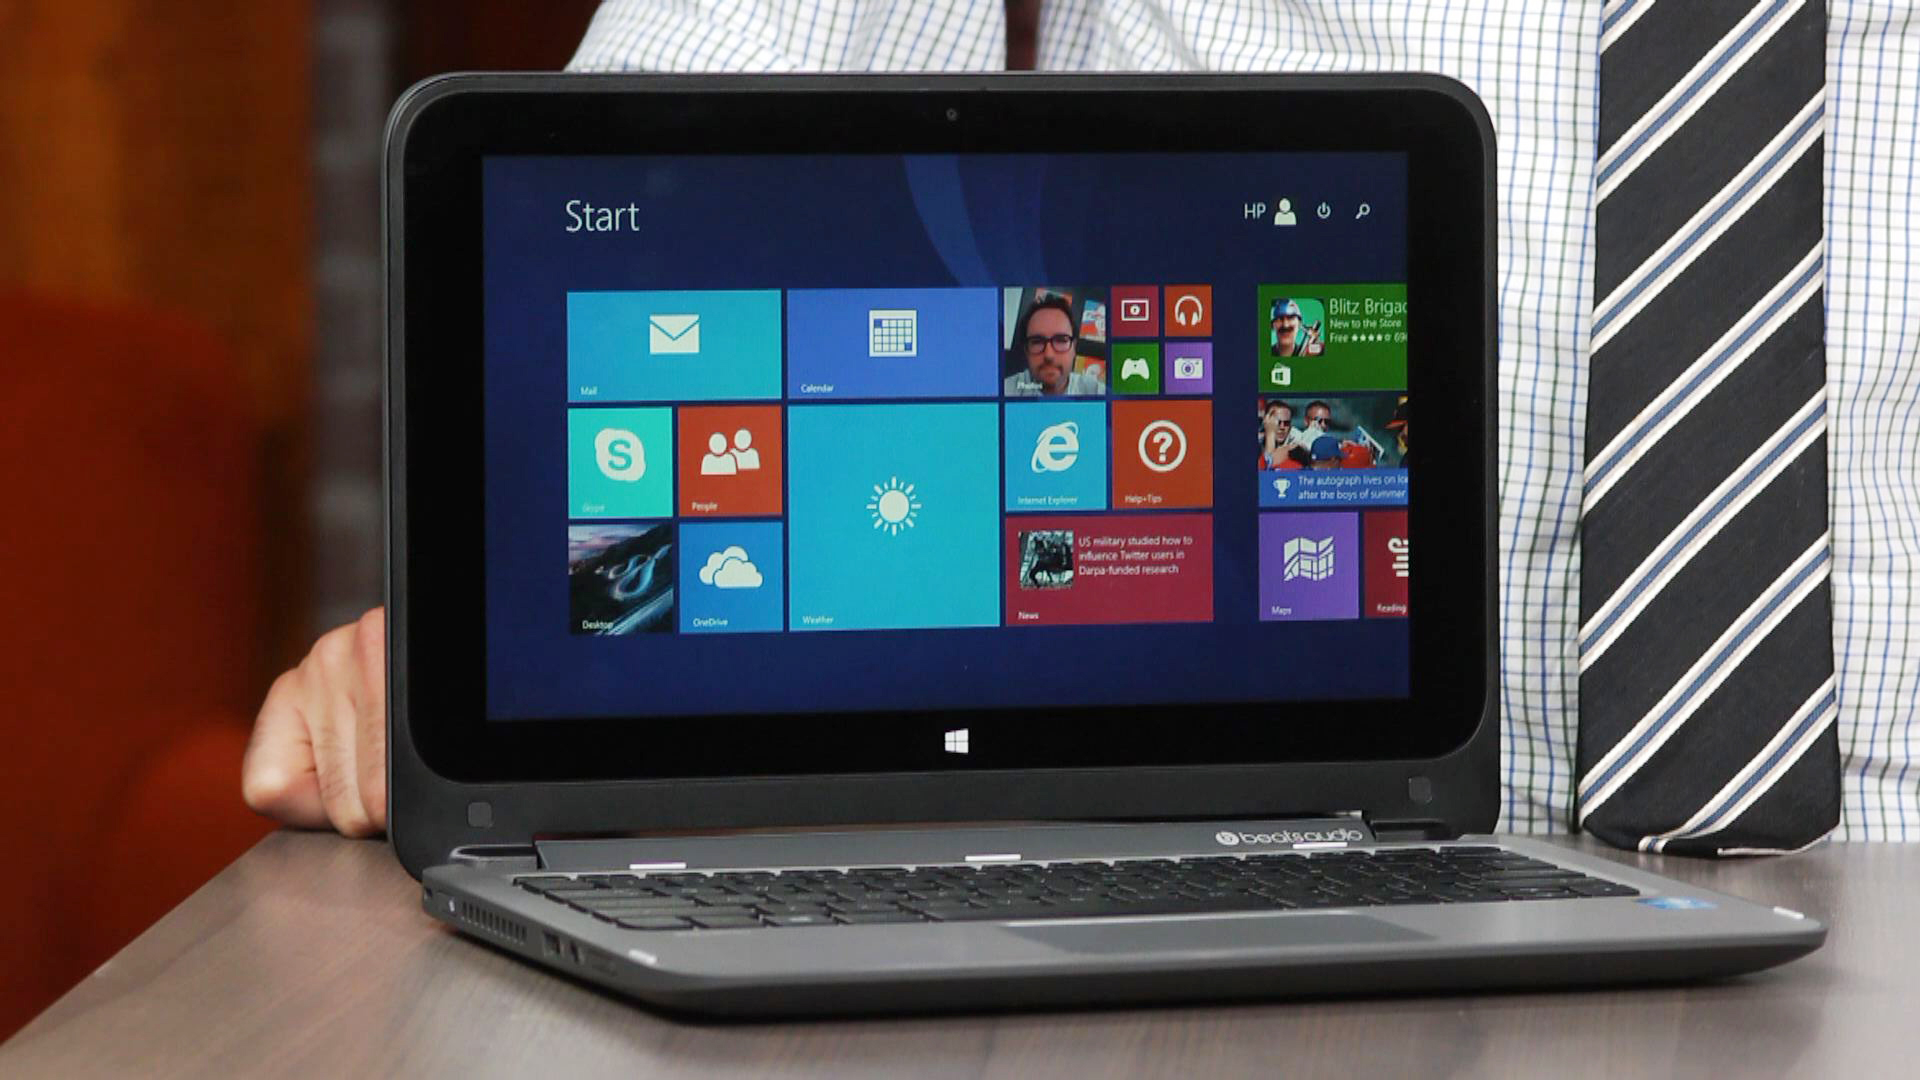 Video: HP Pavilion x360 offers Yoga-like flexibility for less